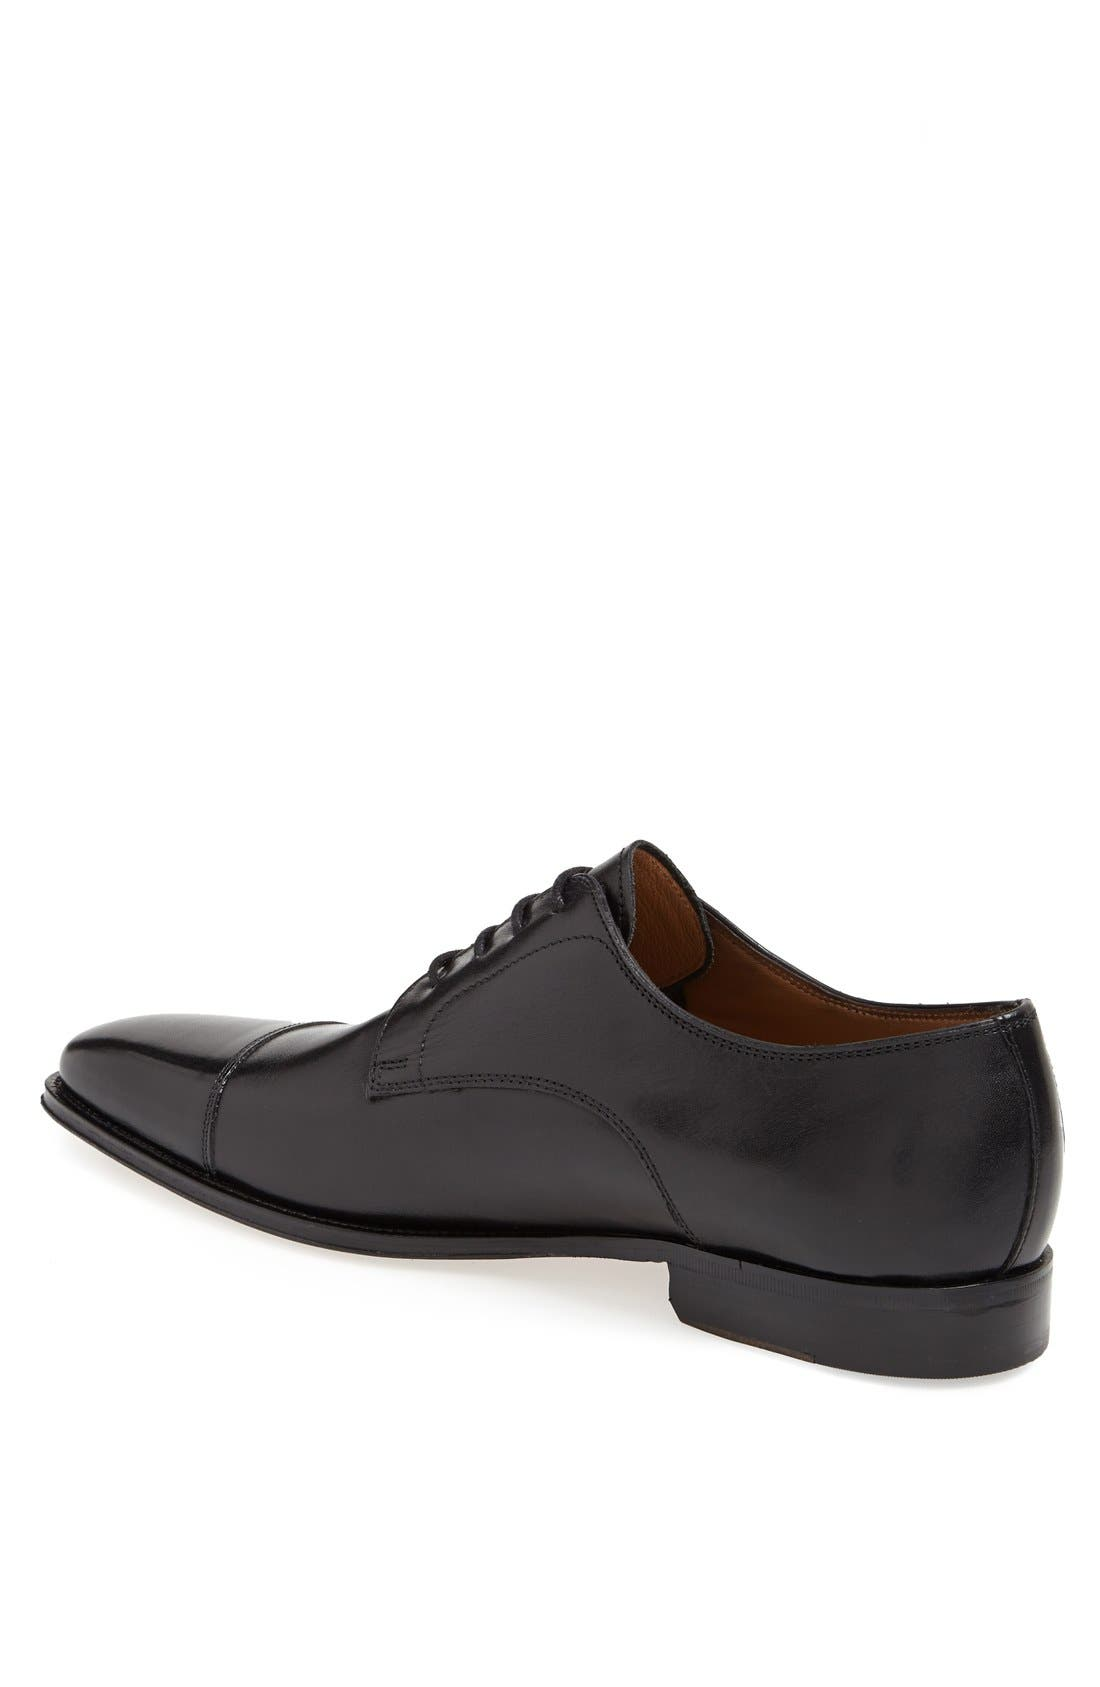 Classico Cap Toe Oxford,                             Alternate thumbnail 2, color,                             BLACK